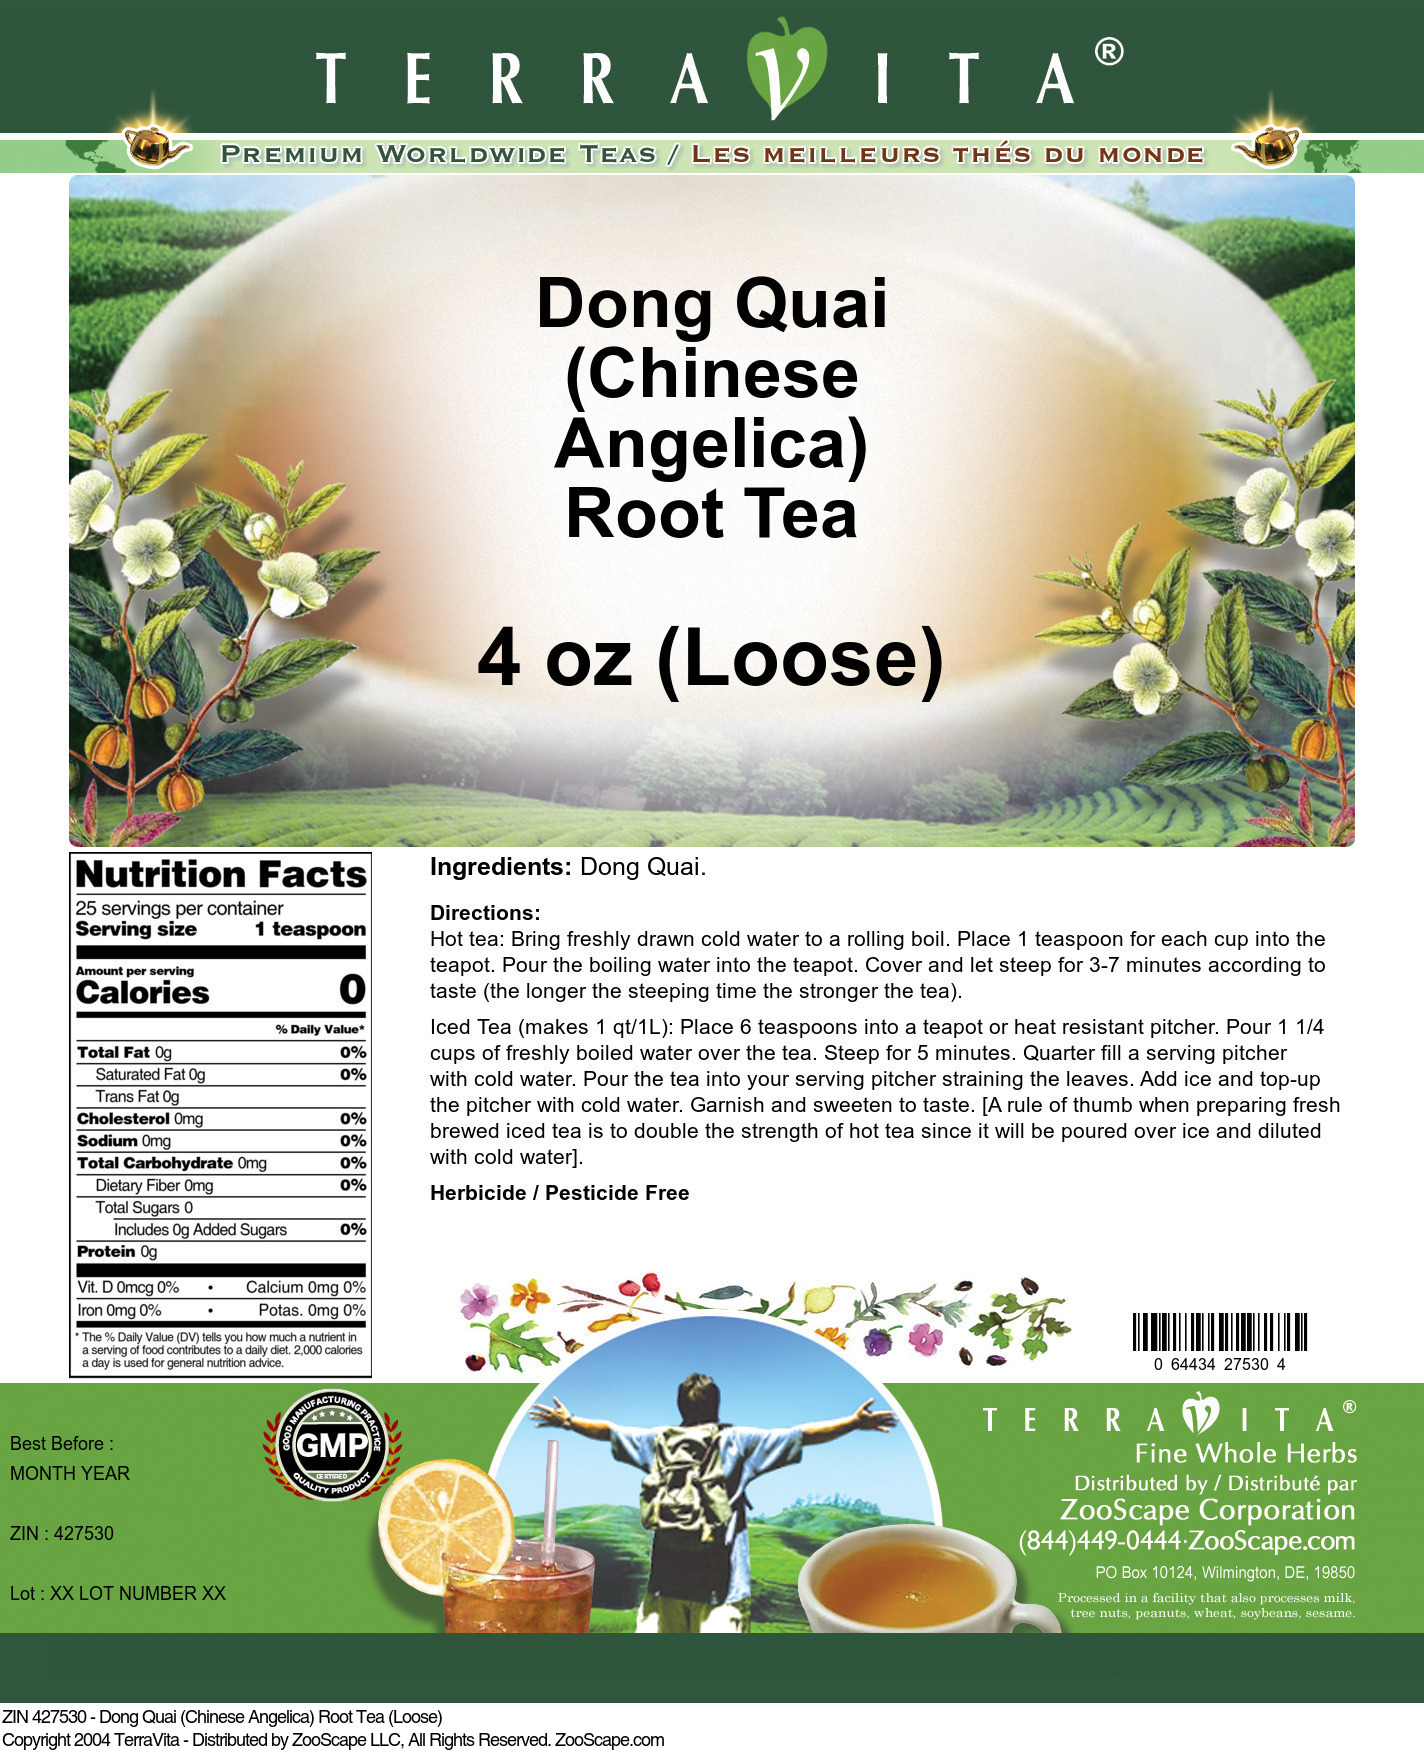 Dong Quai (Chinese Angelica) Root Tea (Loose)